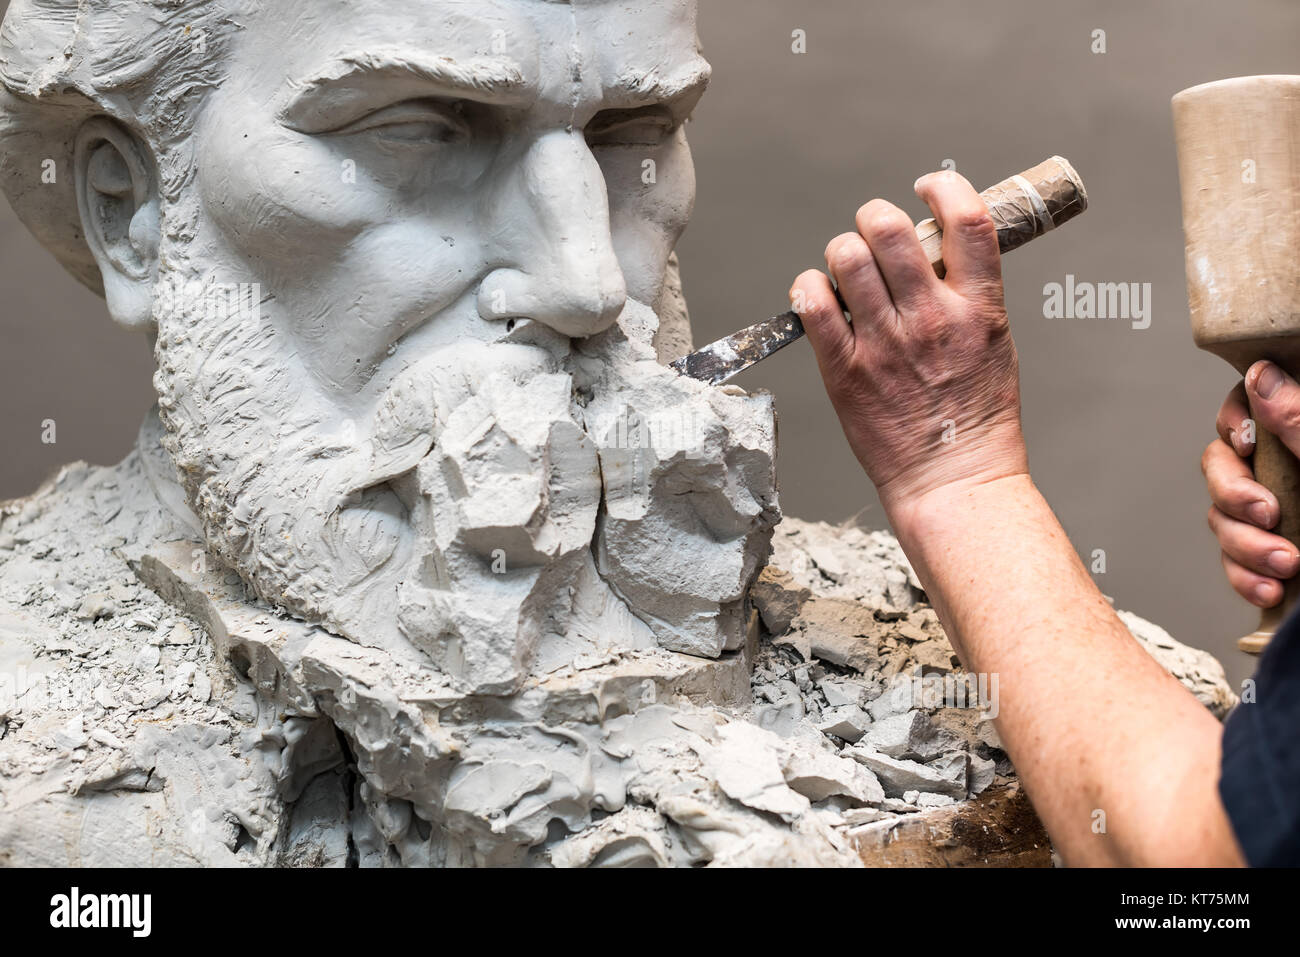 Positive Negative Form. Hands of sculptor and hammer detail while carving. - Stock Image